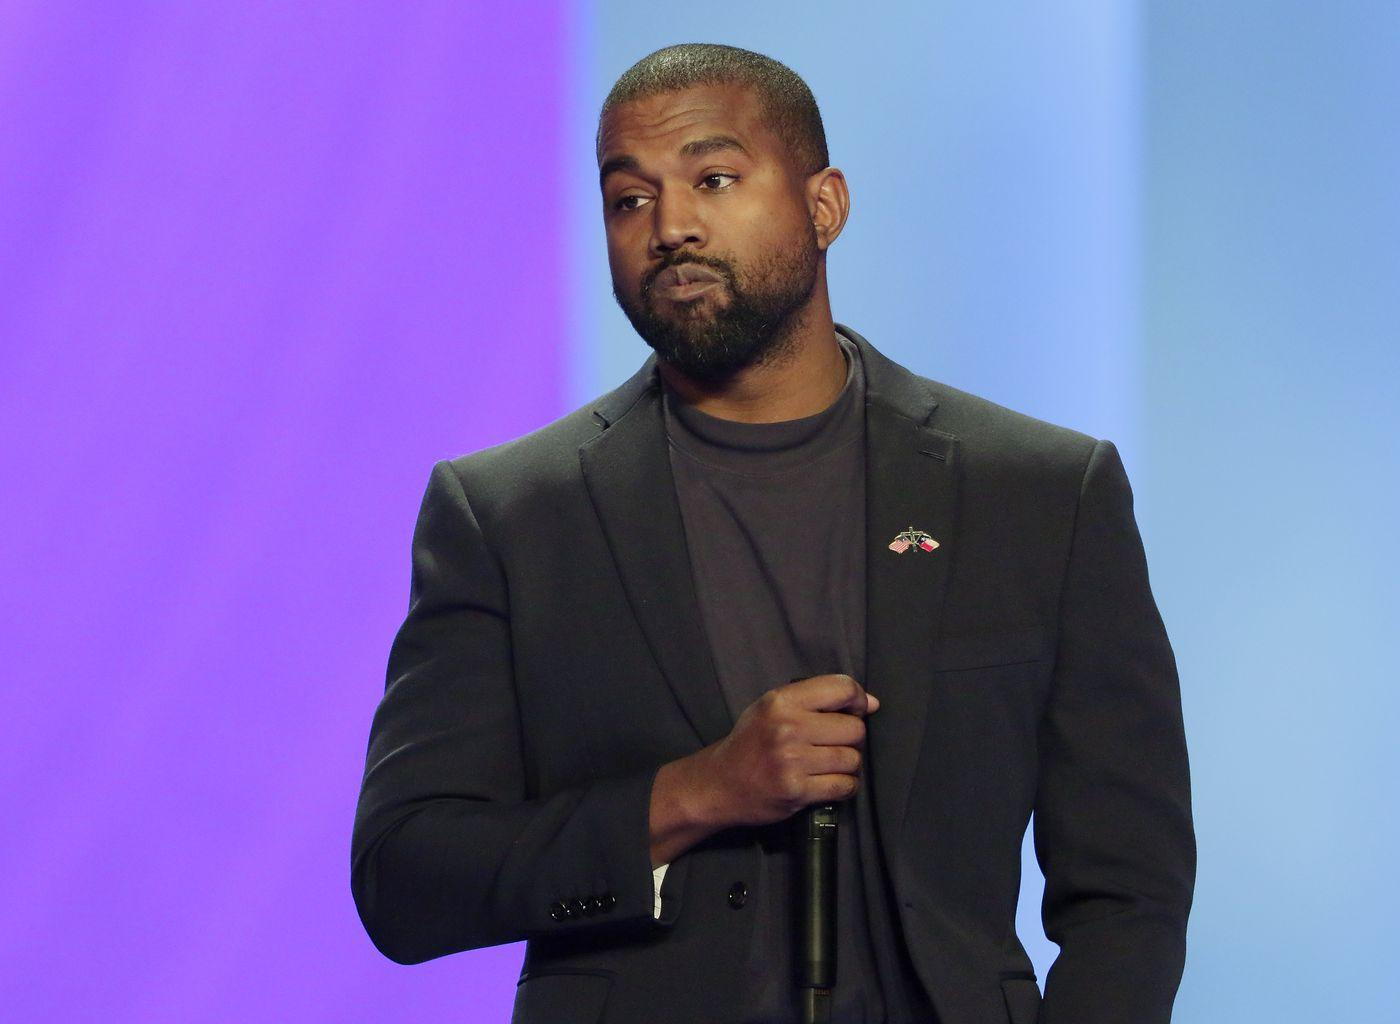 Kanye West Is Set To Hold The First Presidential Campaign